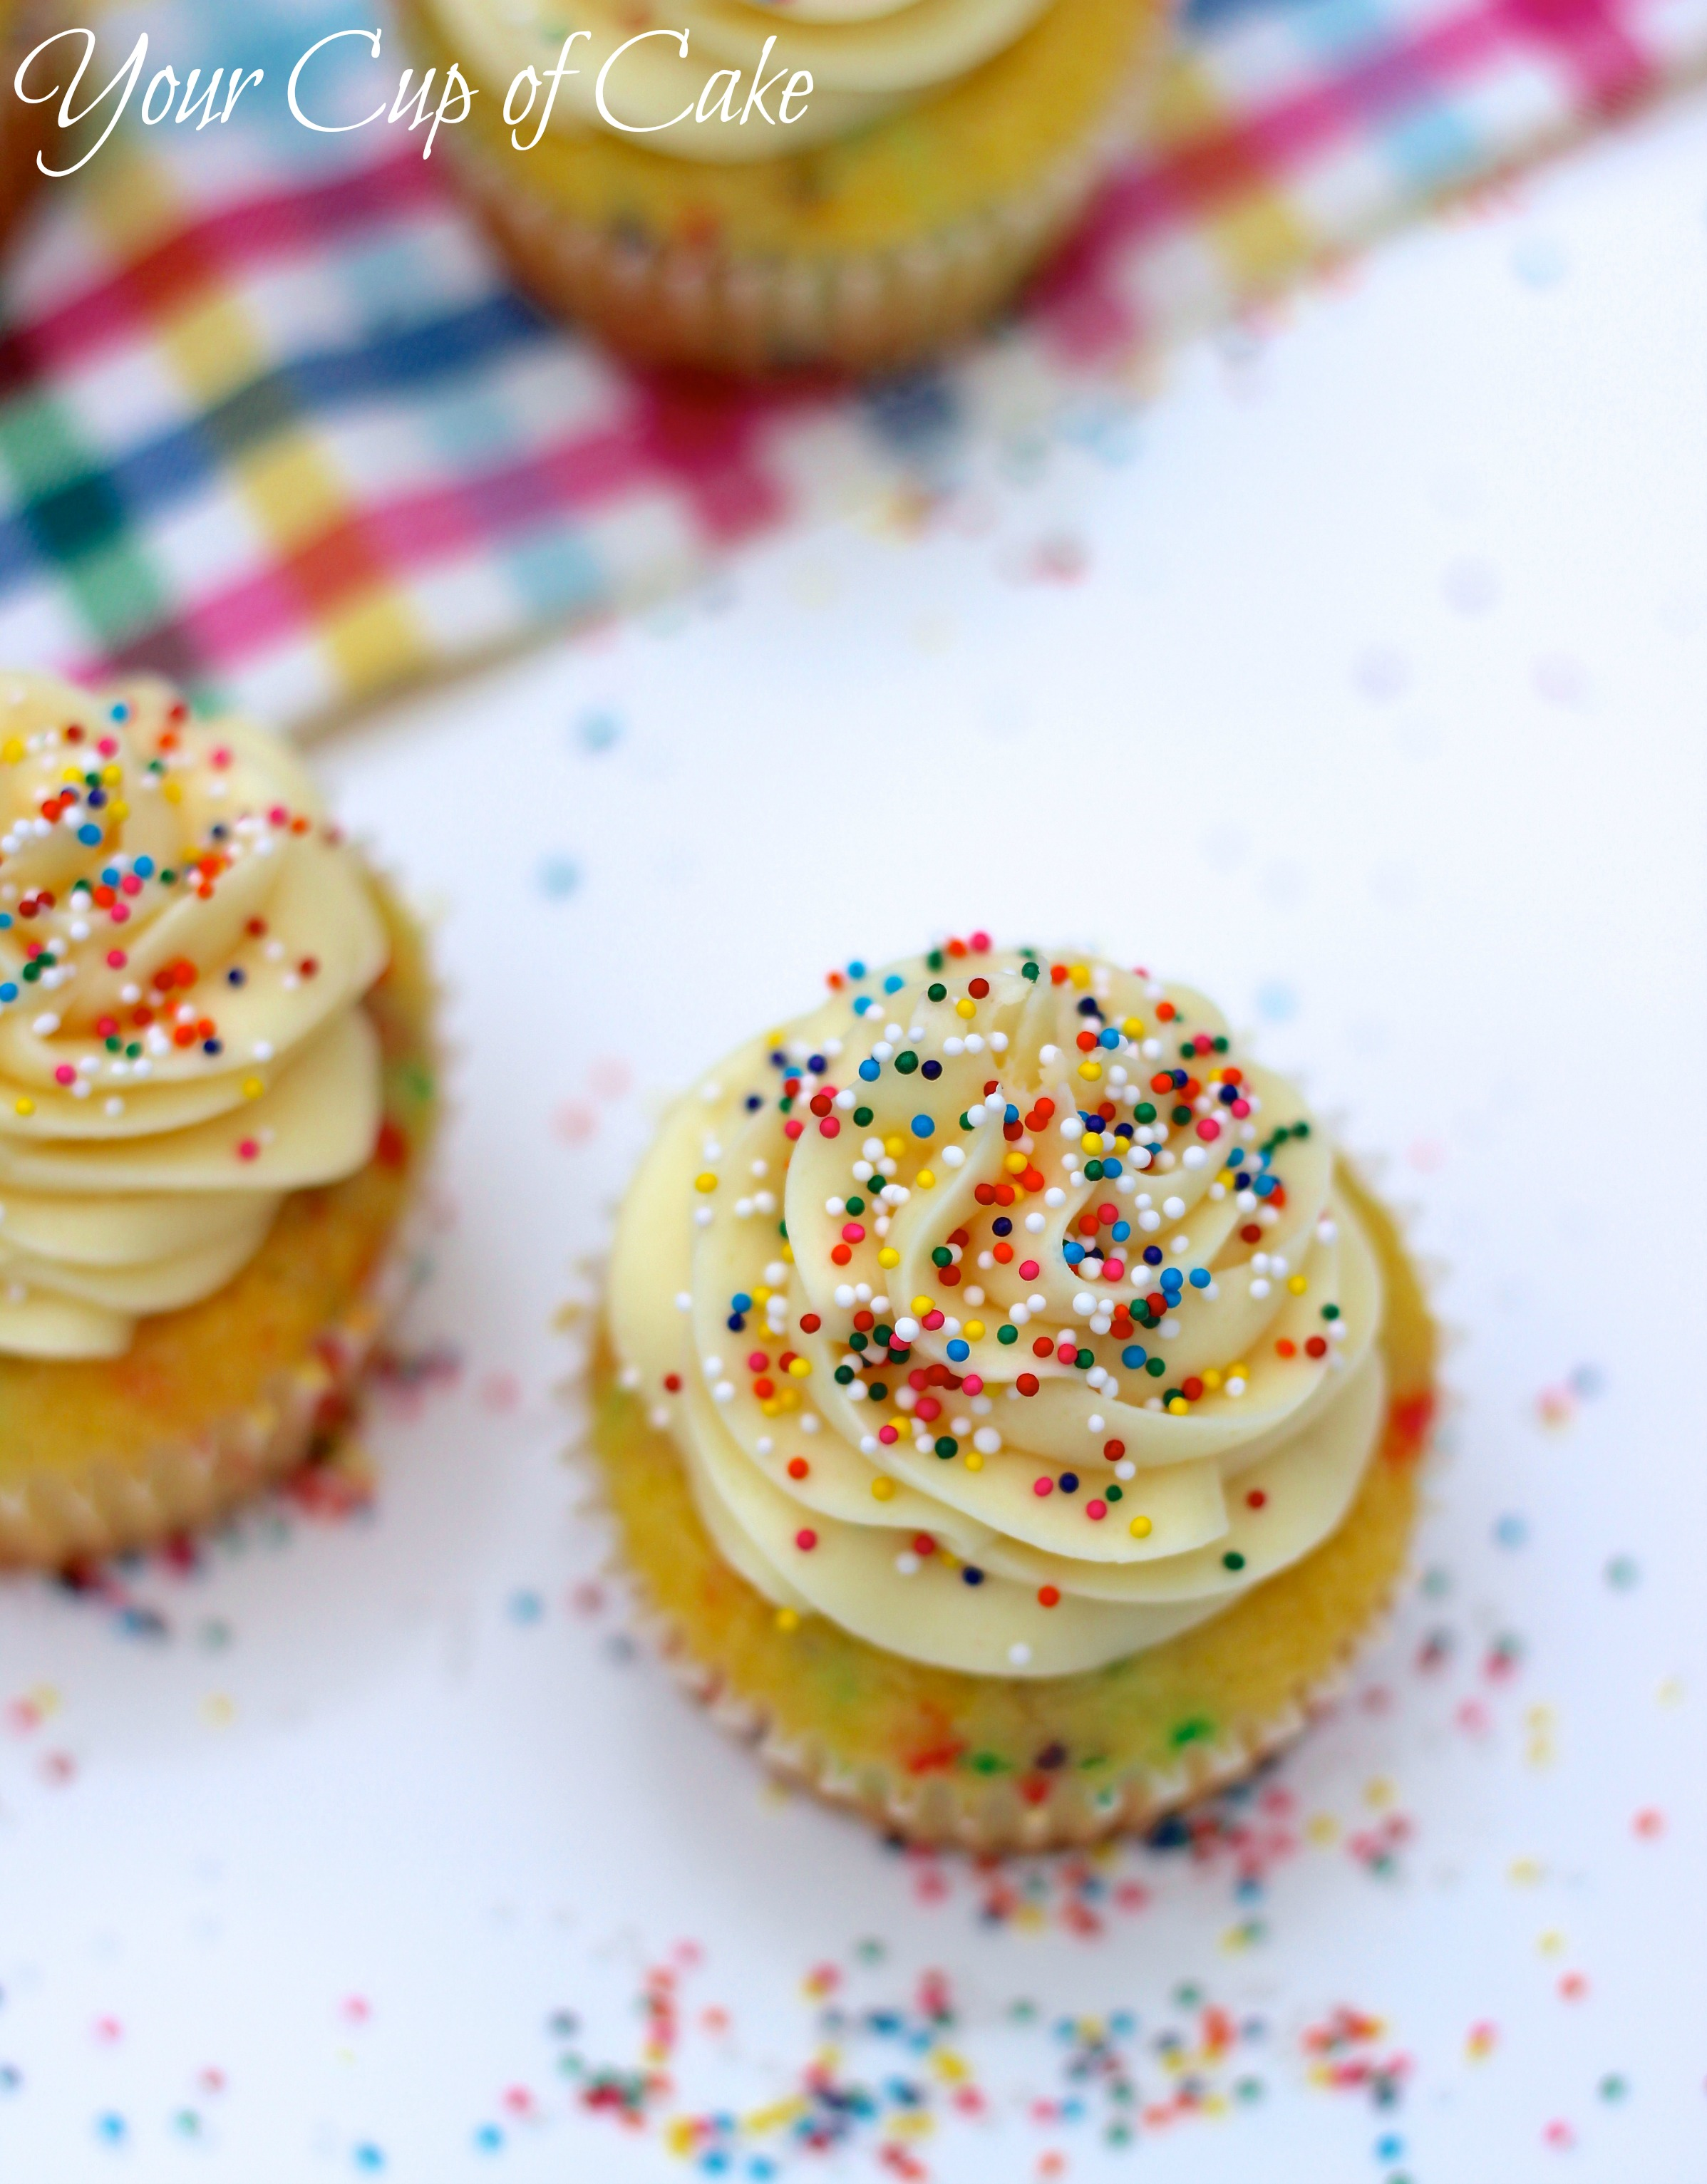 Cake With Cupcake Recipe : Cake Batter Cupcakes - Your Cup of Cake